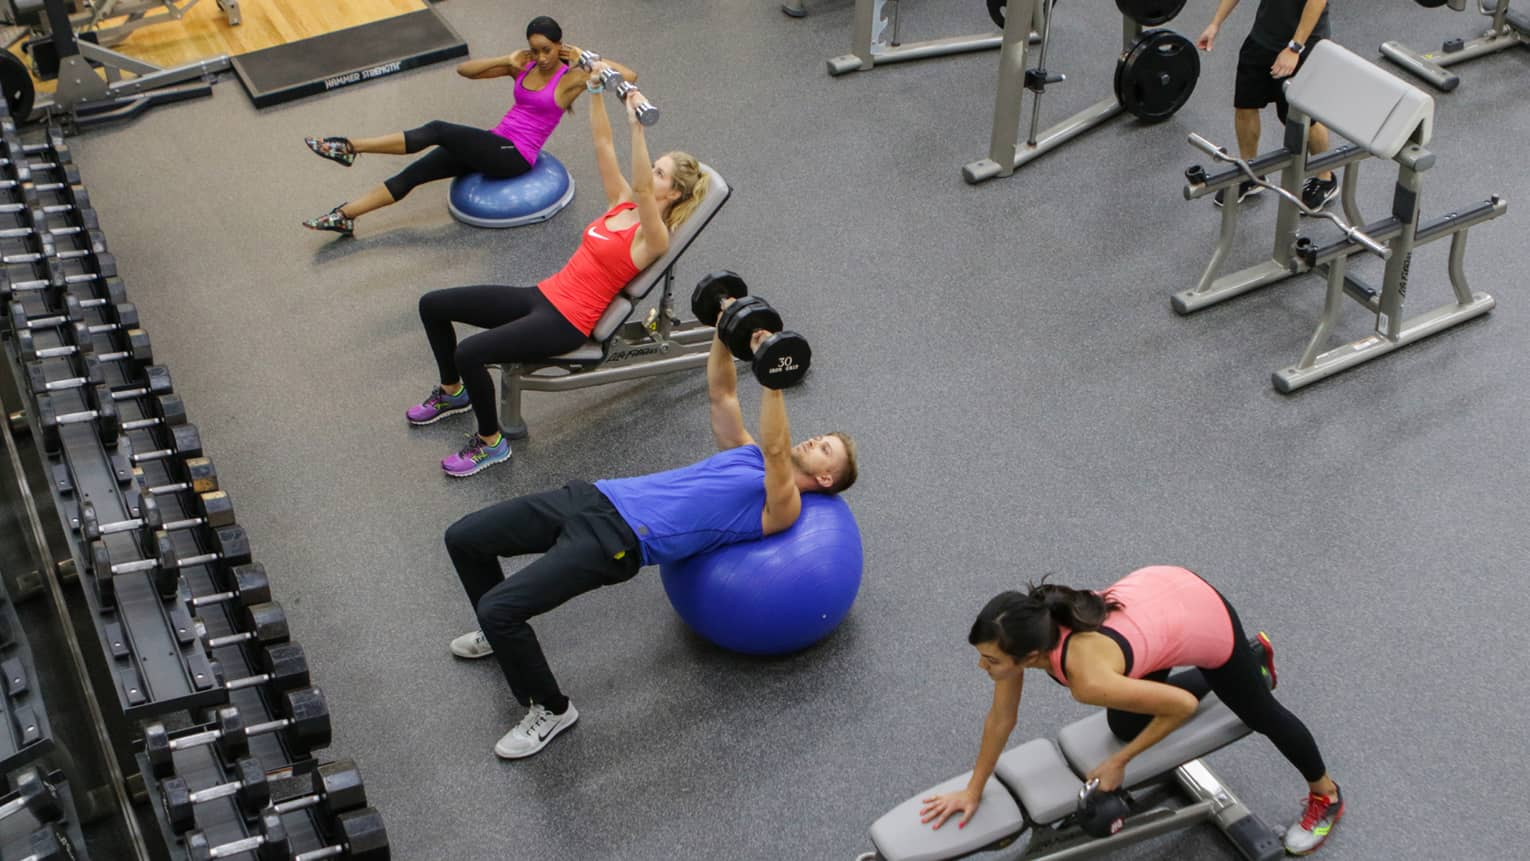 People lift weights, do sit ups in Fitness Centre